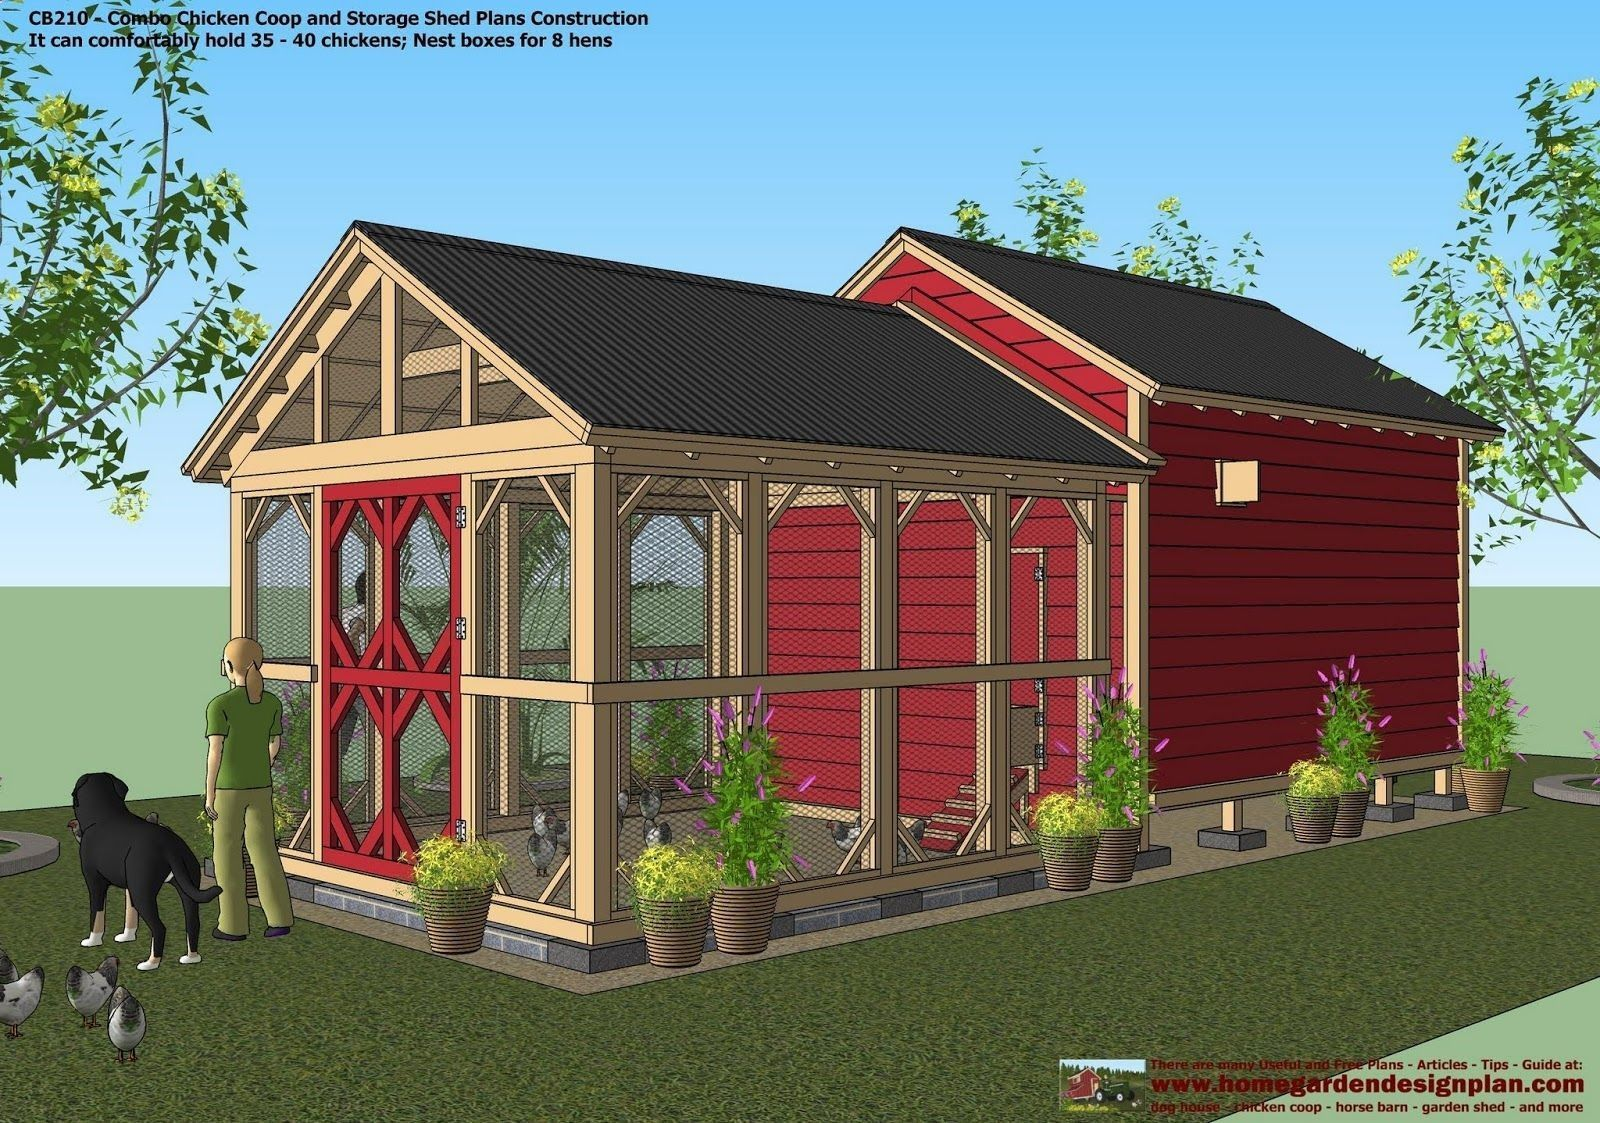 Shed House Designs Html on shed kitchen, shed interior design, shed to house, shed house interior, best shed designs, steel home plans and designs, shed styles designs, shed man cave designs, small shed designs, shed exterior designs, backyard shed designs, corner shed designs, shed roof, shed cabin tiny house, shed landscaping ideas, shed house floor plans, shed house style, fancy shed designs, contemporary shed designs, shed bar designs,